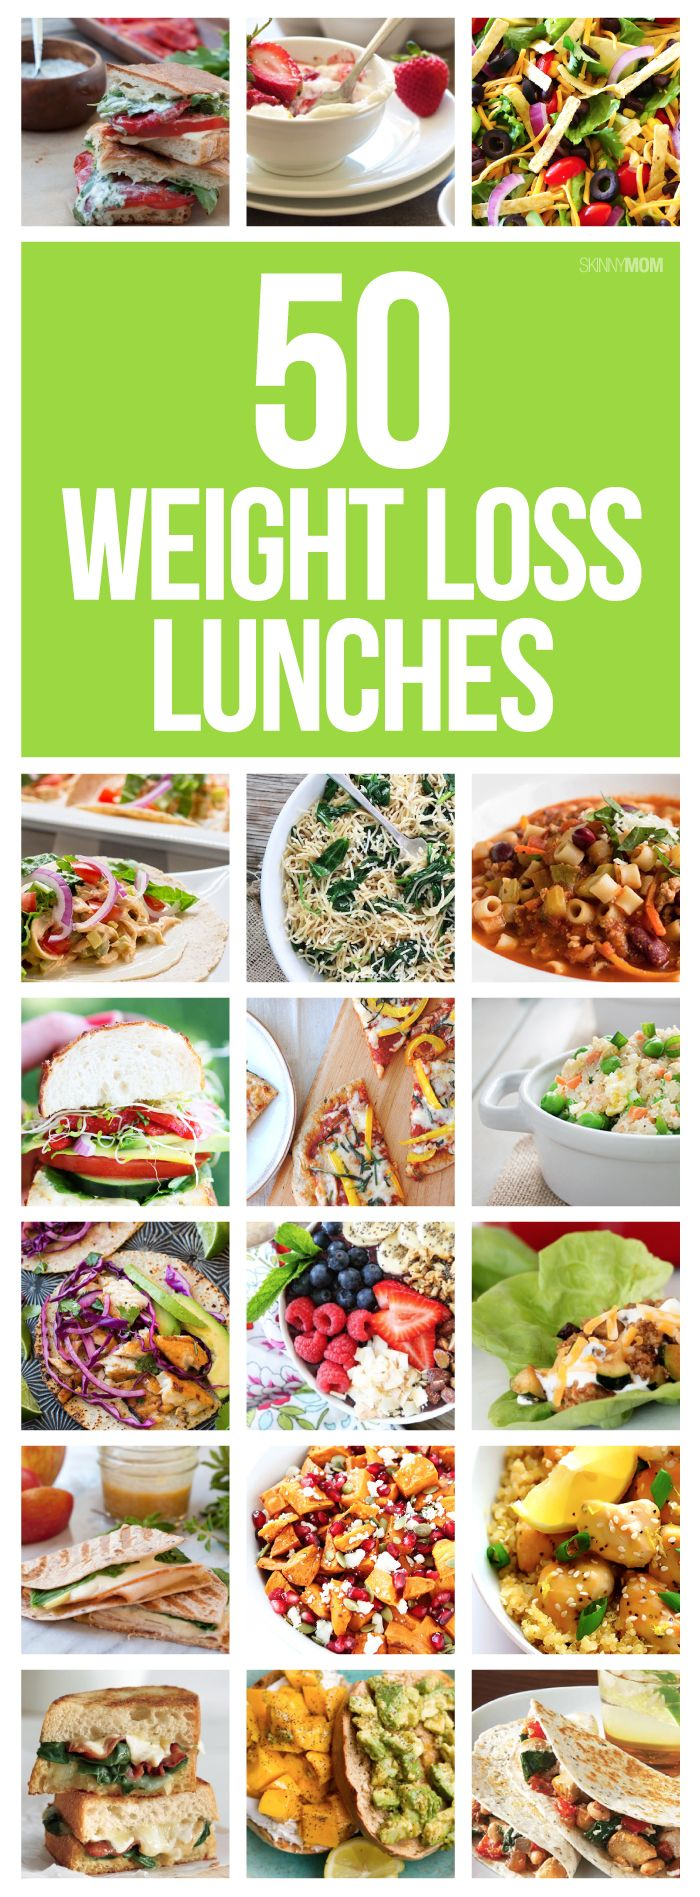 50 healthy lunches to help you LOSE WEIGHT!